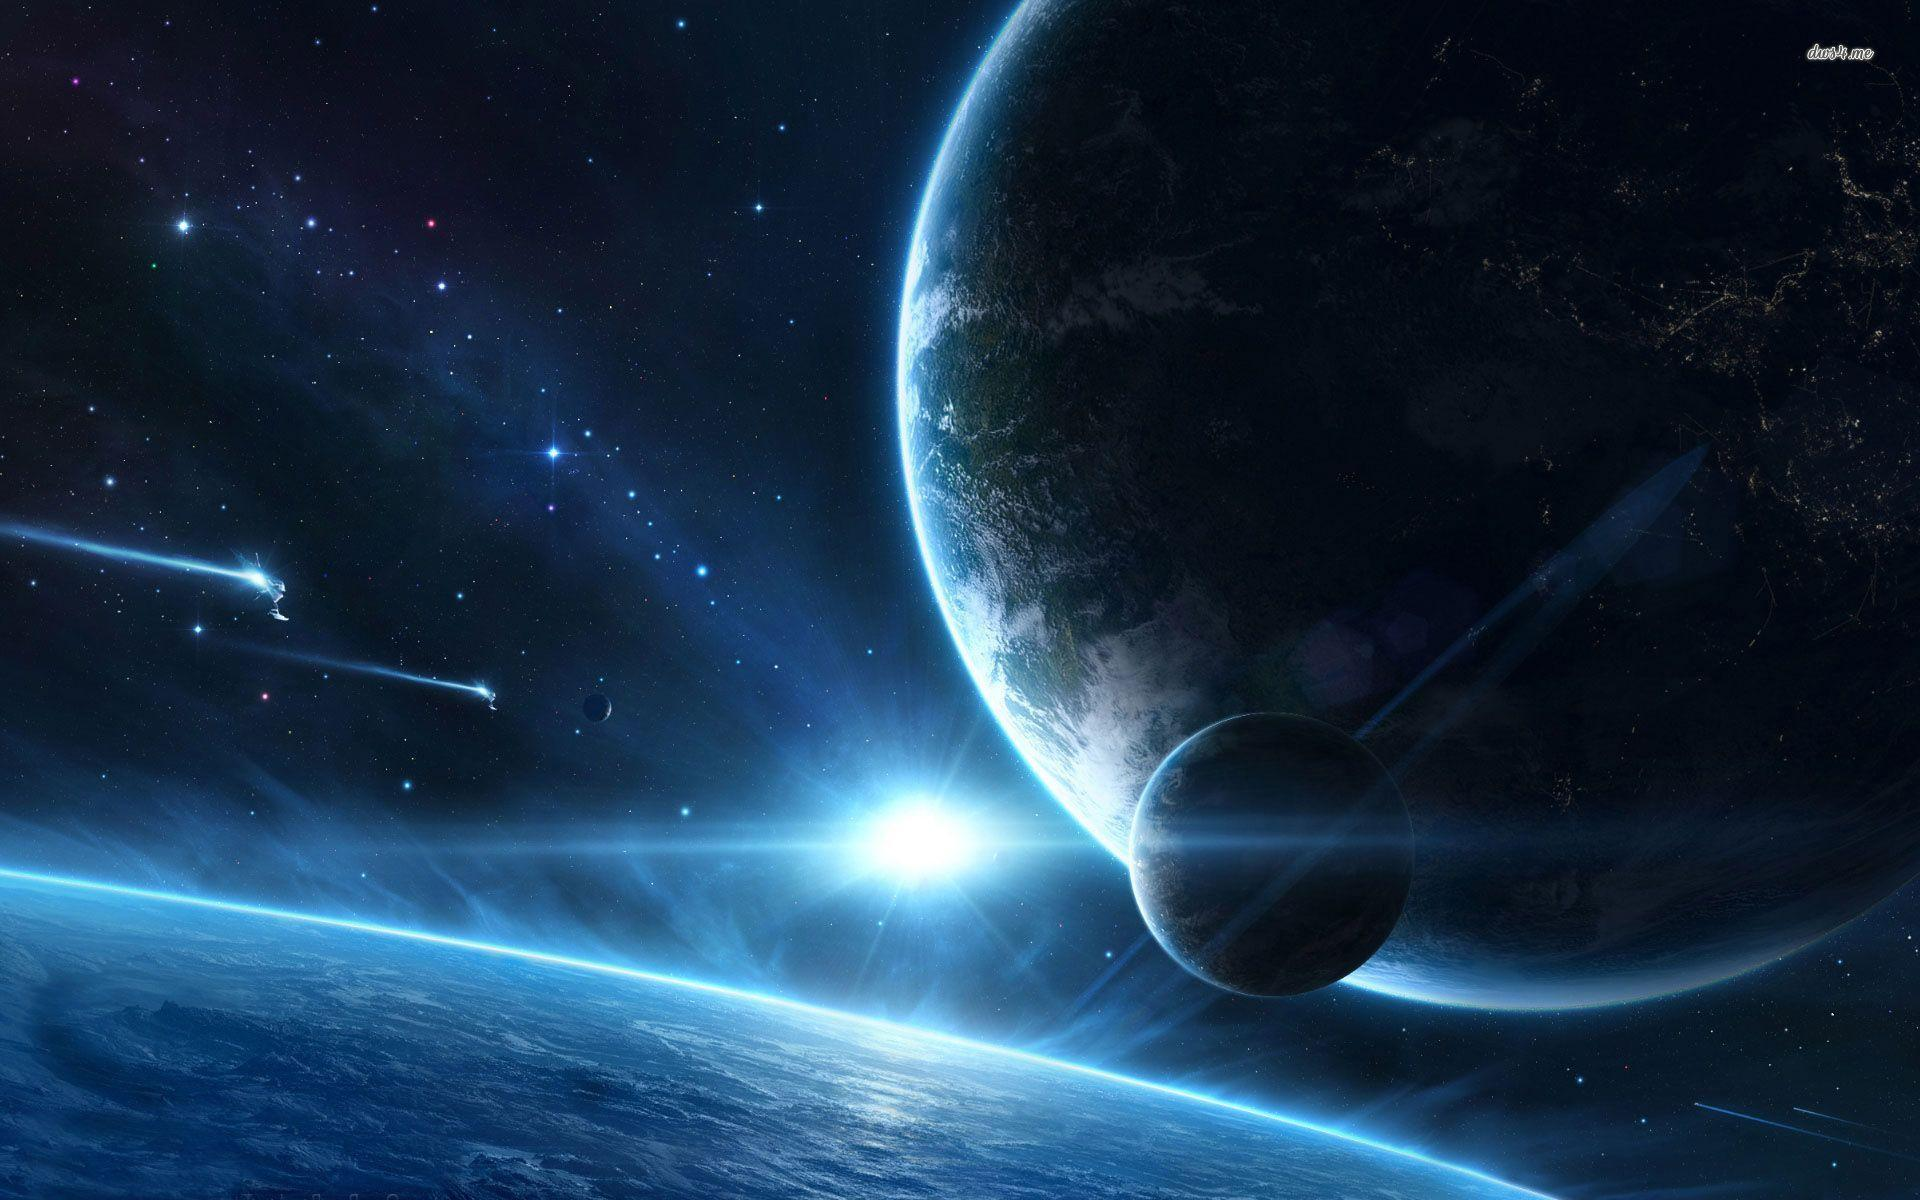 planets 3d windows background - photo #16